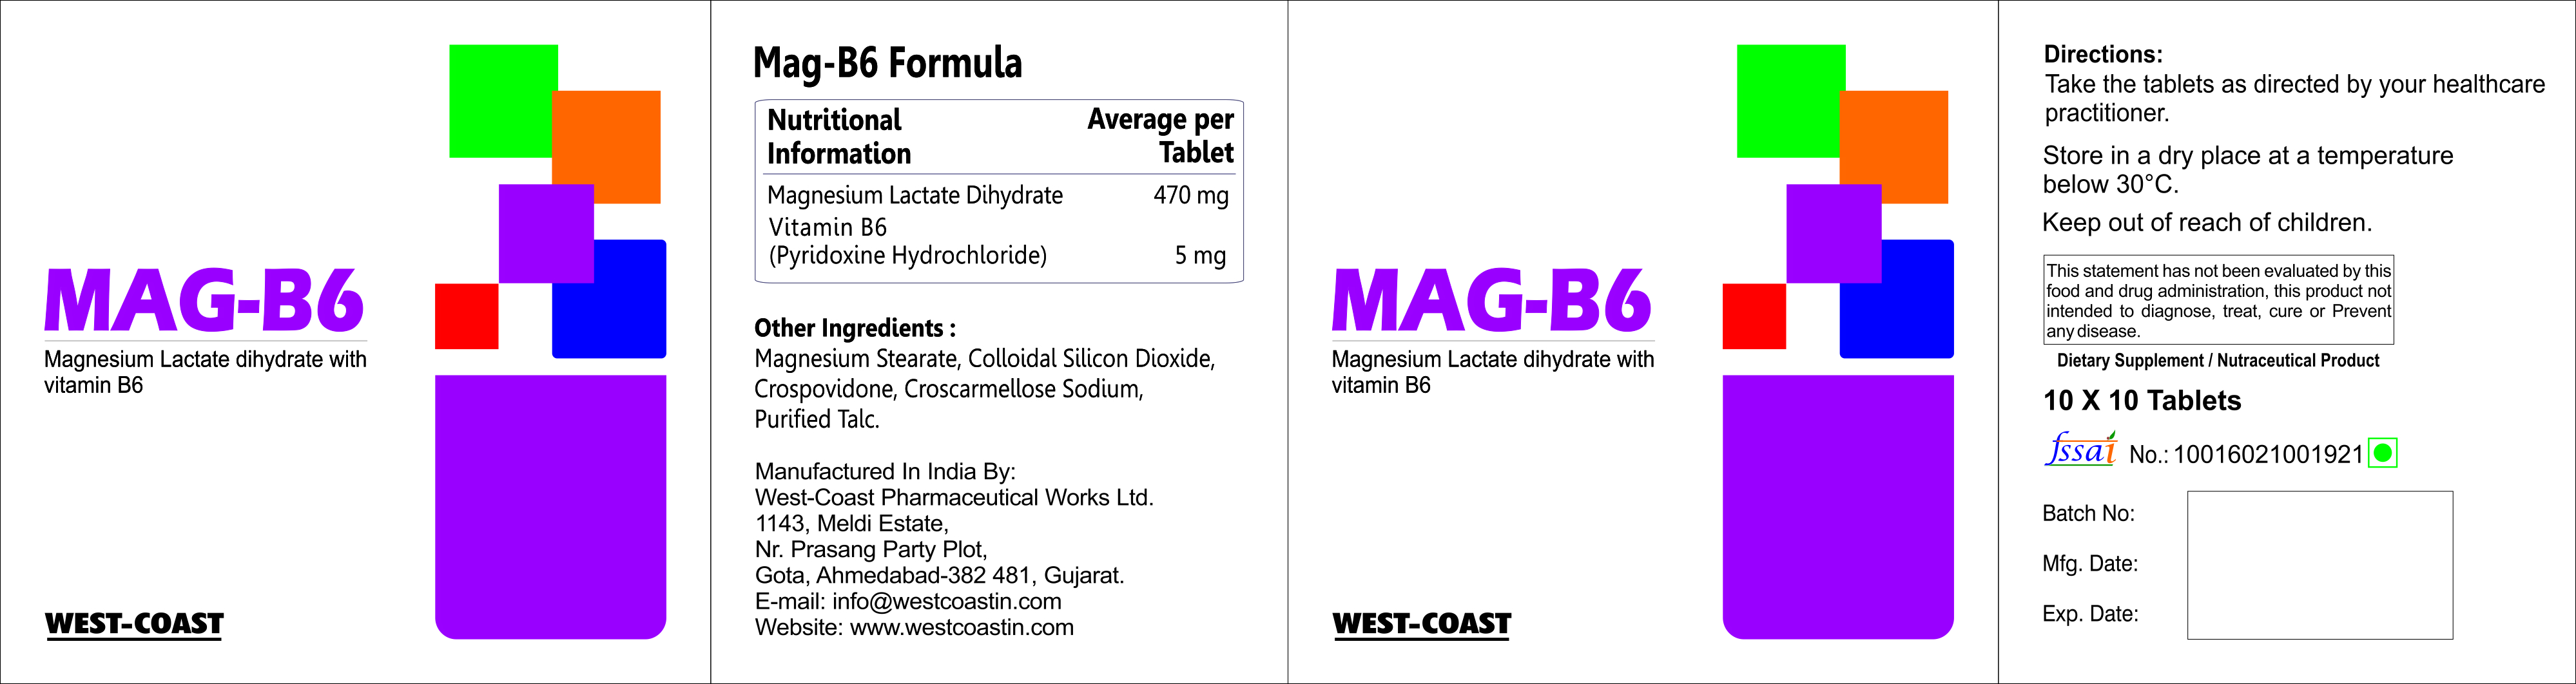 Mag-B6 Tablet With Magnesium Lactate And Vitamin B6 – West